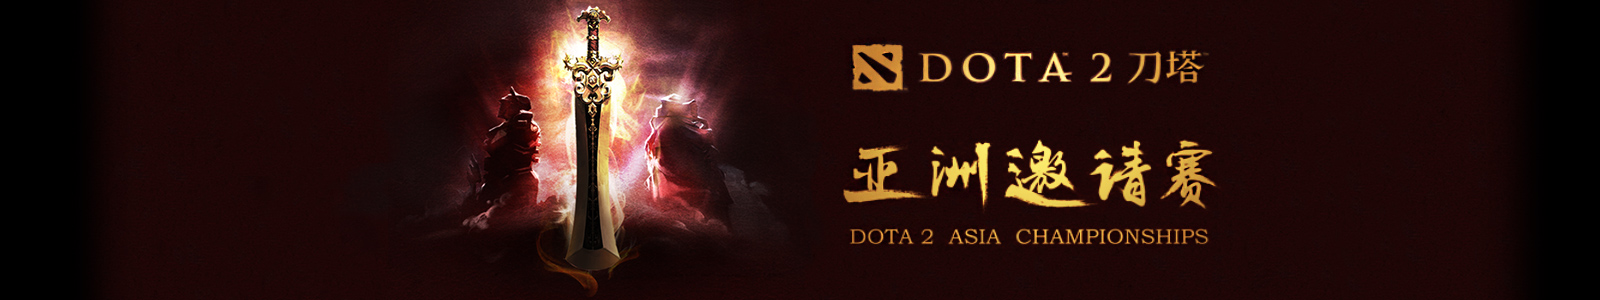 Main Page giant banner DAC 2015.jpg